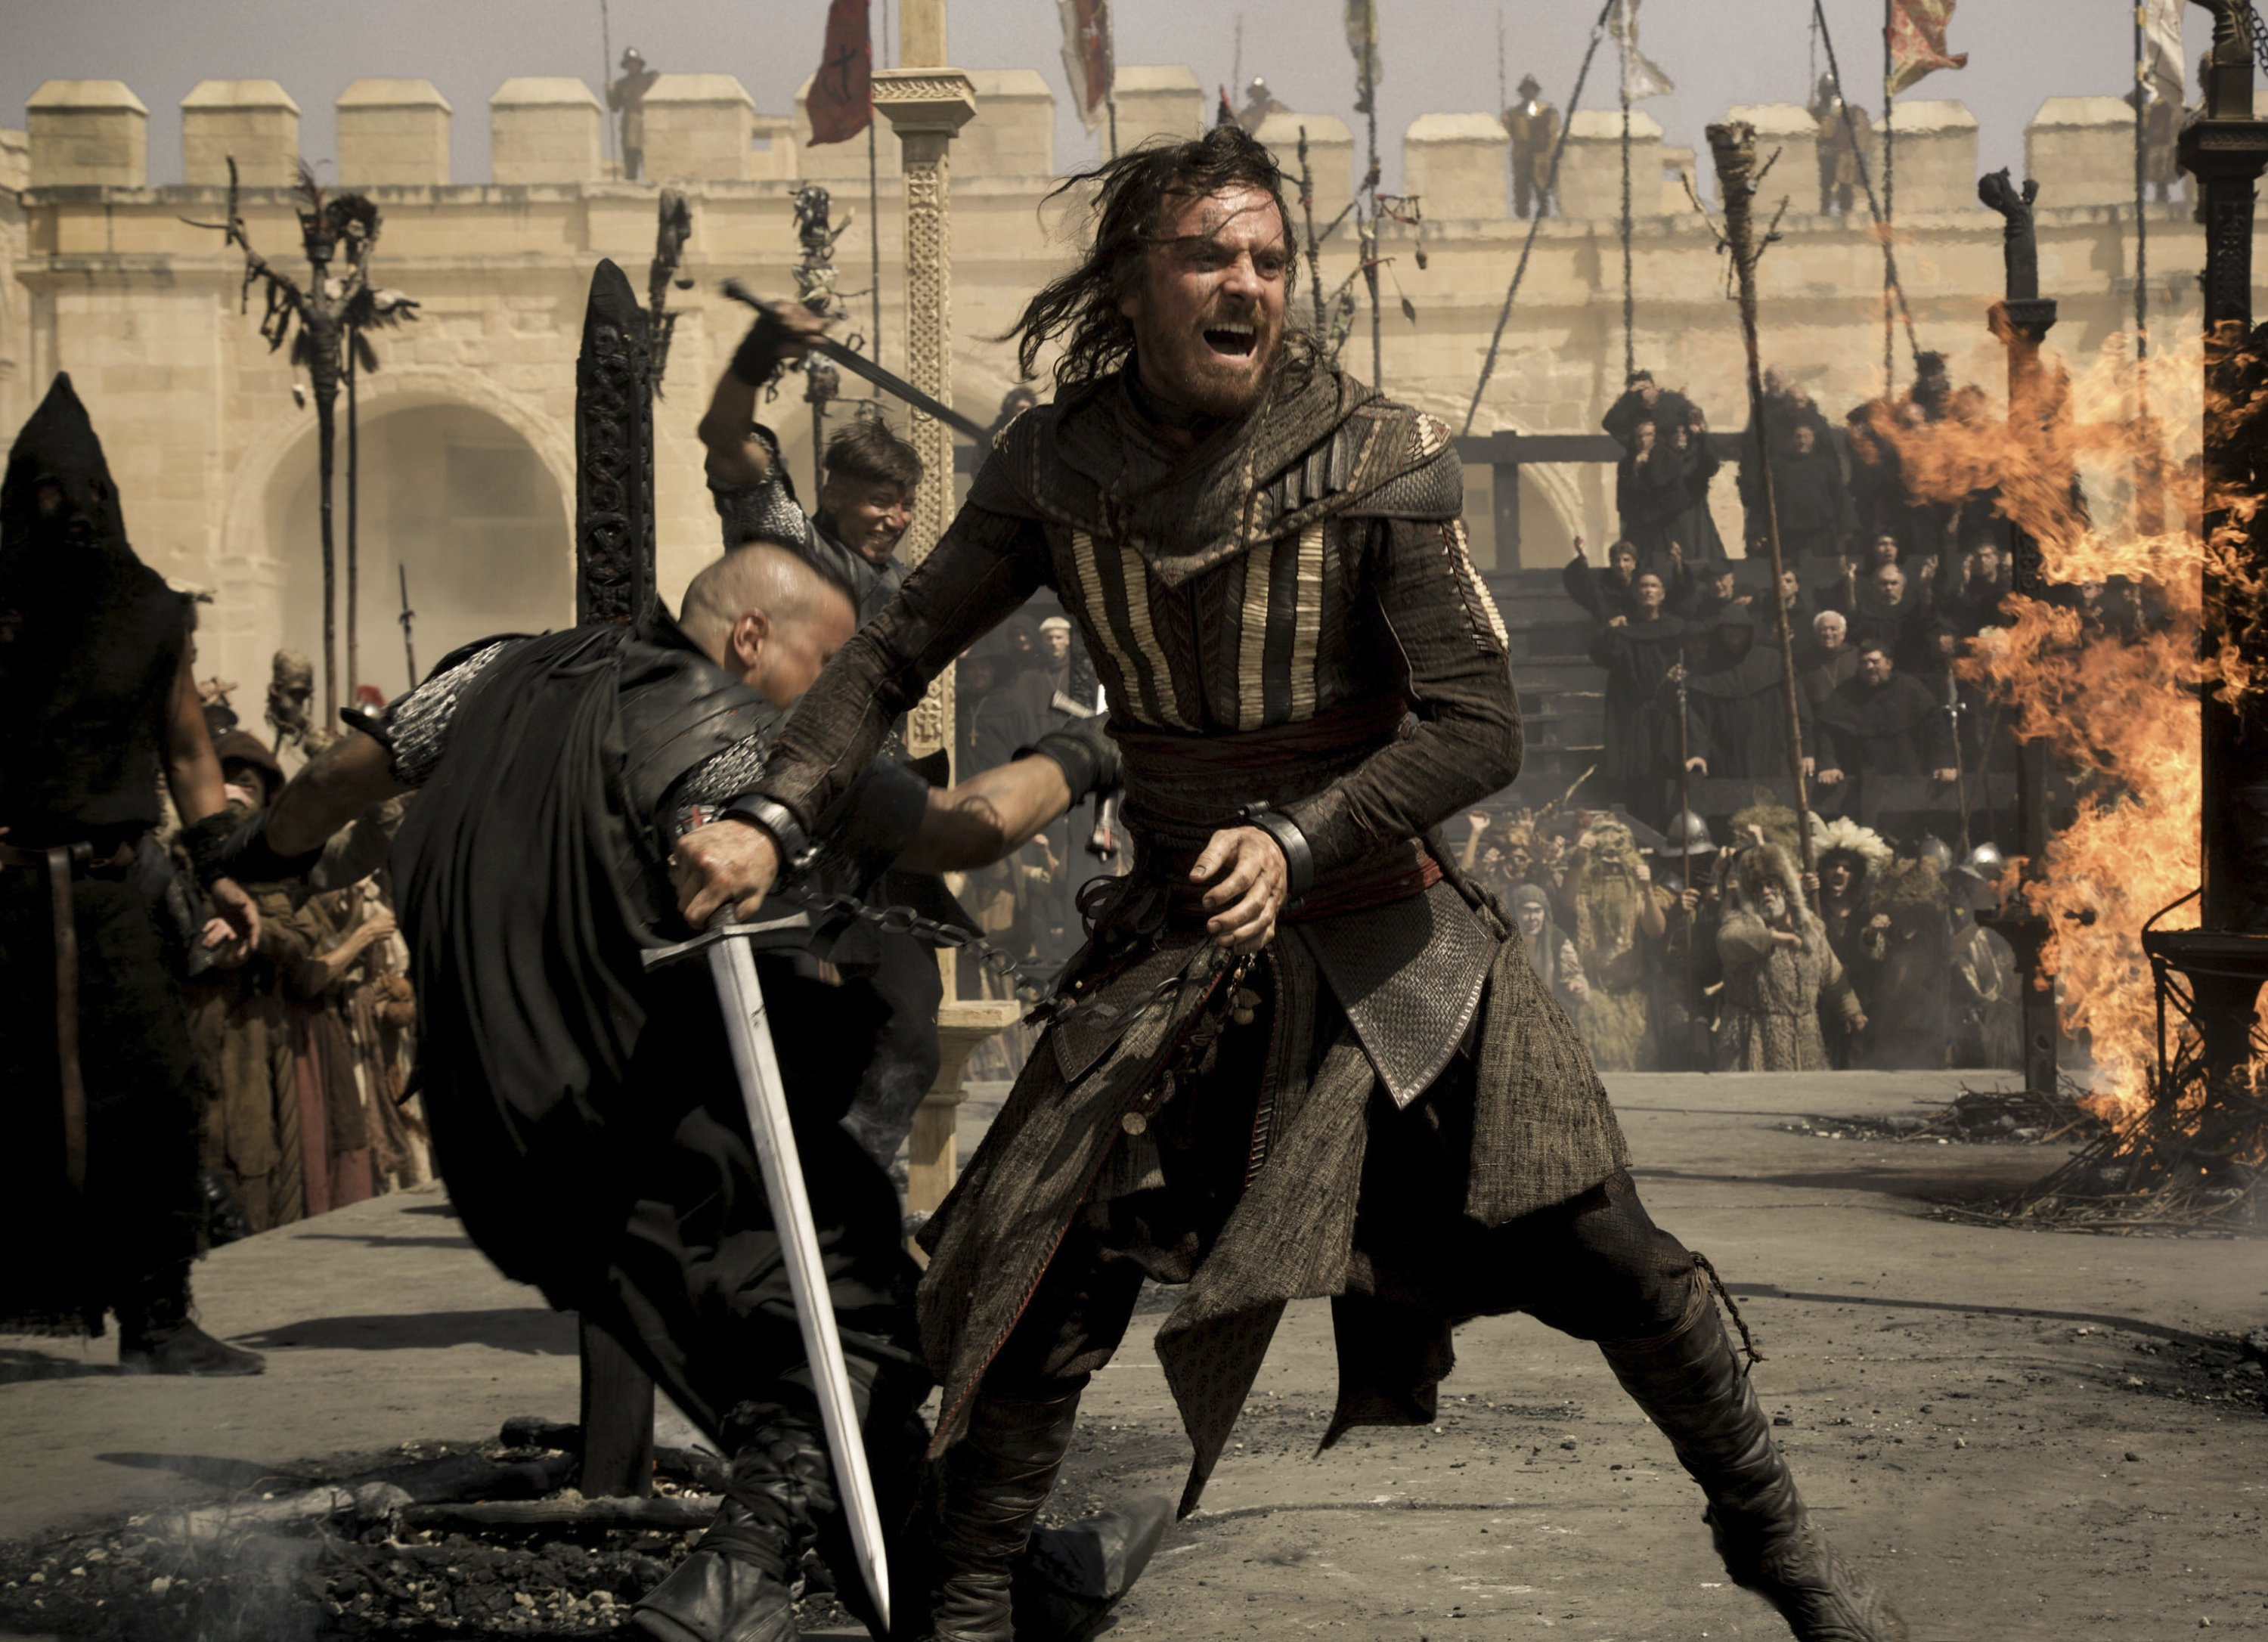 """Actor Michael Fassbender as the character """"Callum Lynch"""", defends himself in a sword fight, in a scene from 'Assassin's Creed,' a film based on the video game series. (20th Century Fox via AP)"""